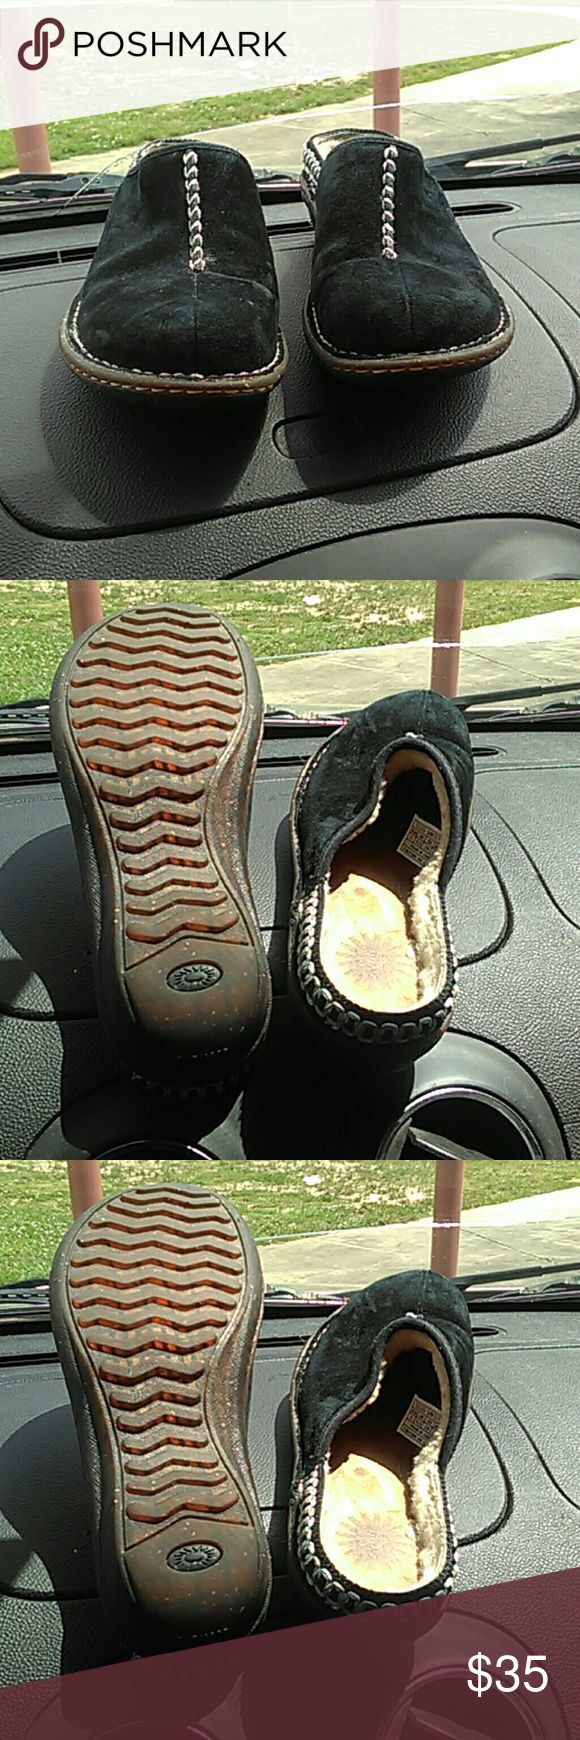 Ugg slip on mules clogs black size 8 Good condition.  Could use some brushing off and cleaning up with ugg cleaning kit.    Shoes do not smell. Cleaning Kit not included. UGG Shoes Mules & Clogs